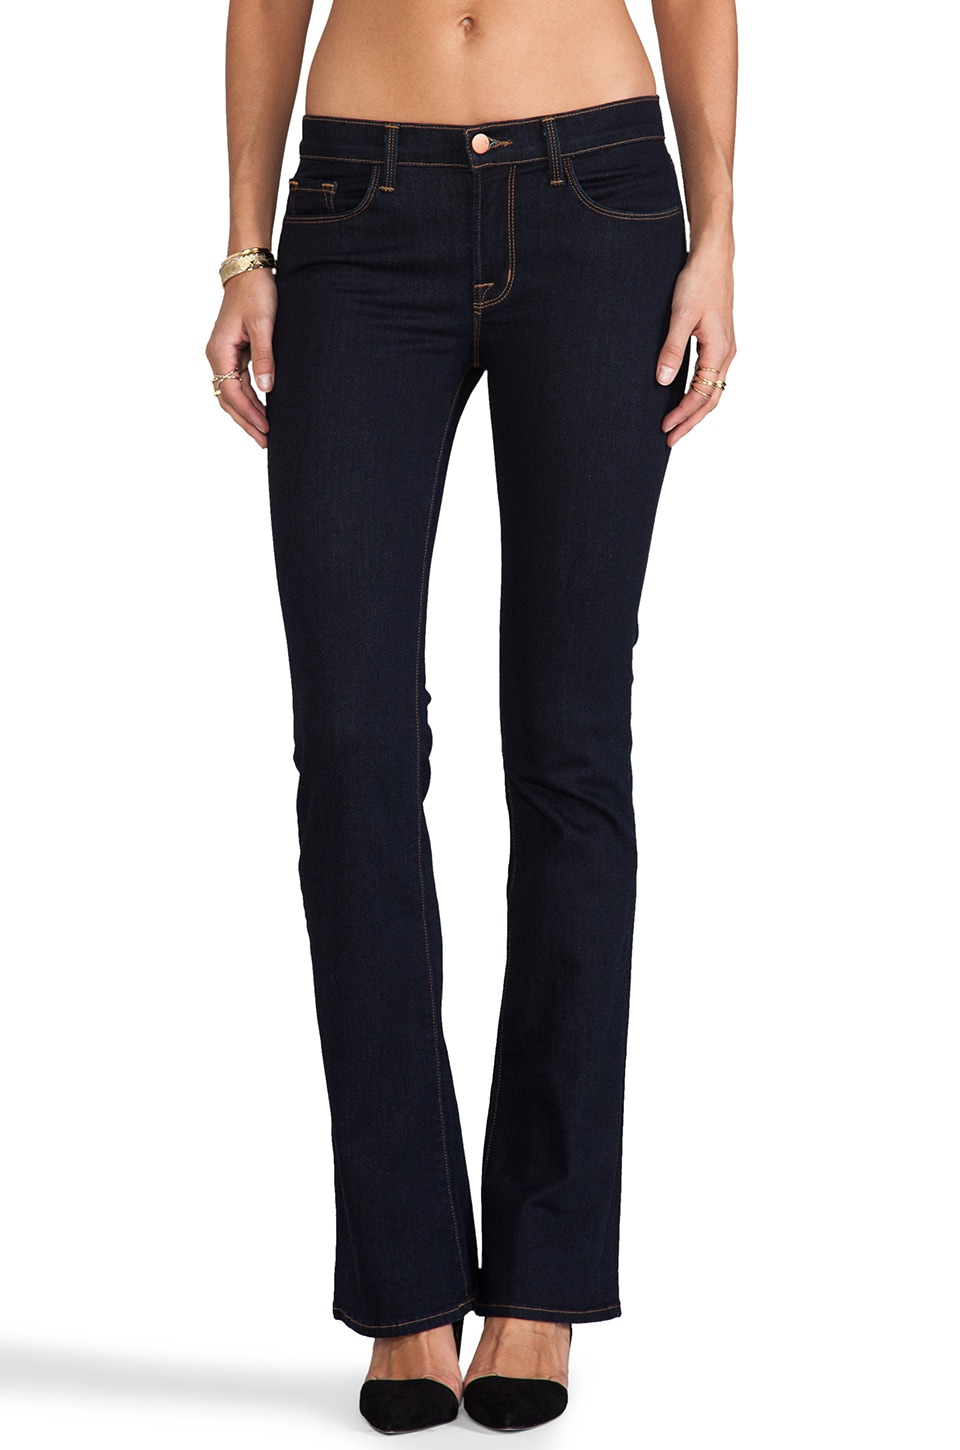 J Brand Brooke Skinny Boot in Starless